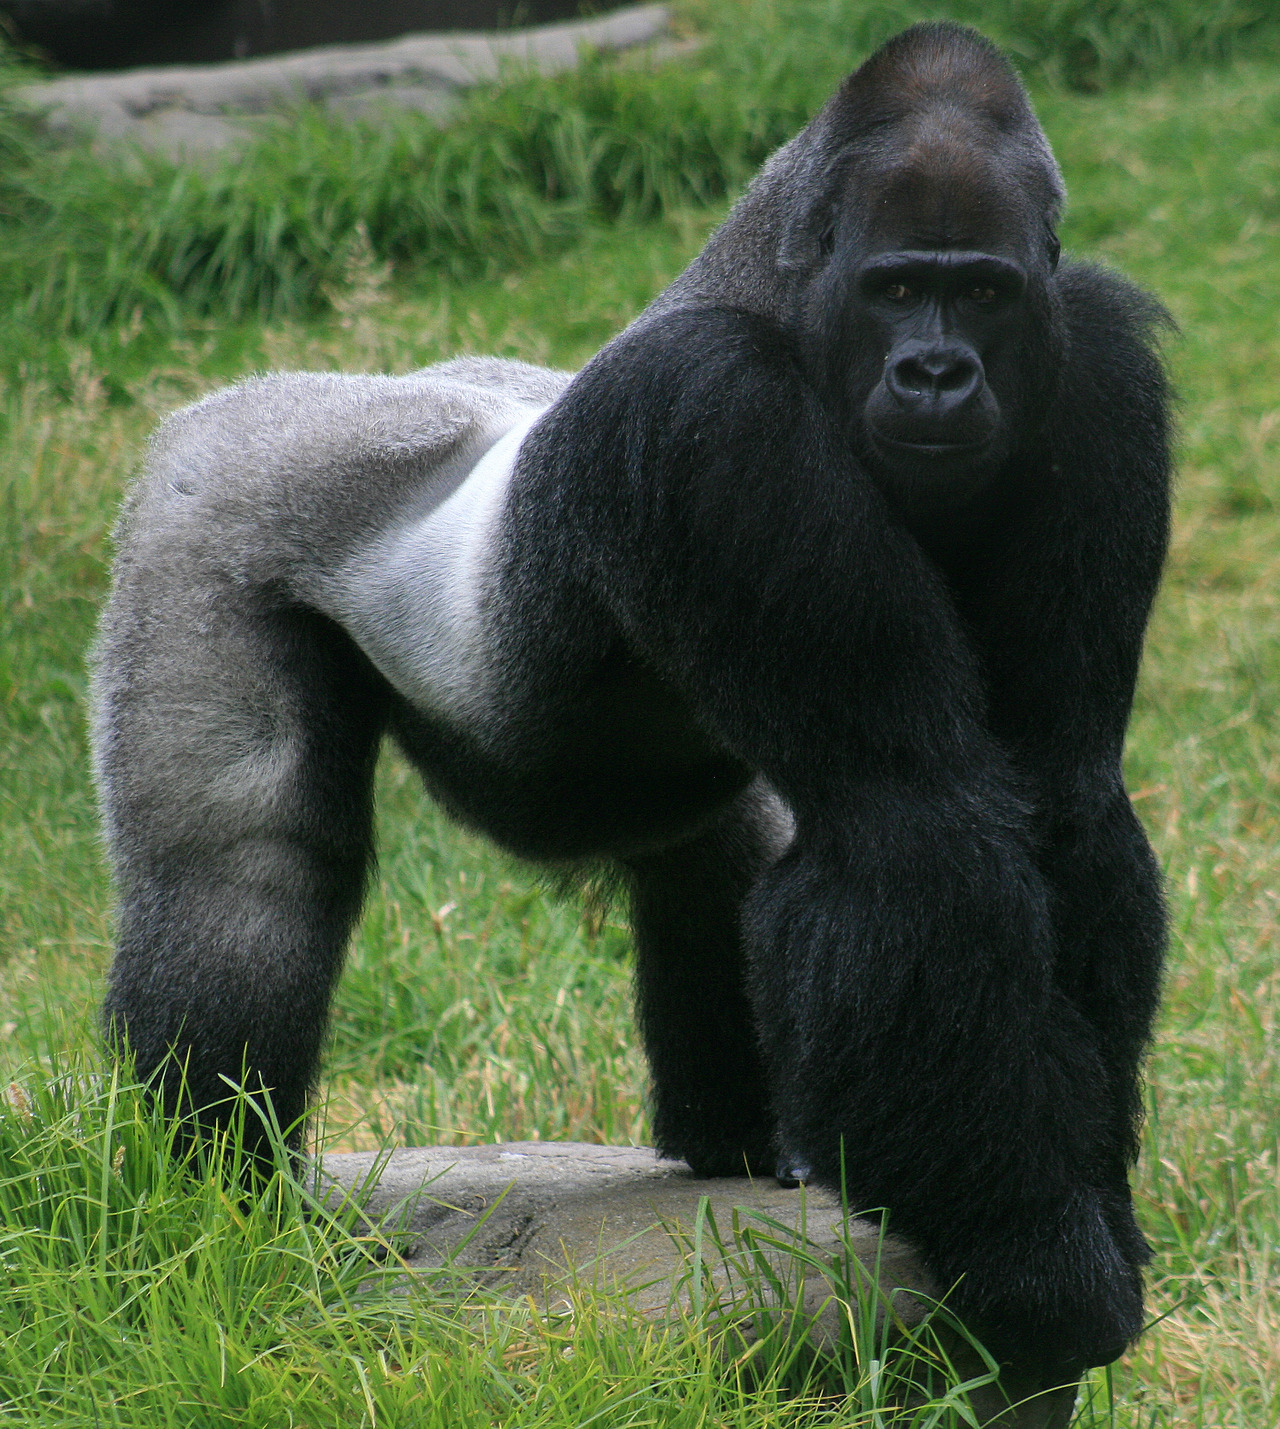 Male_gorilla_in_sf_zoo_large